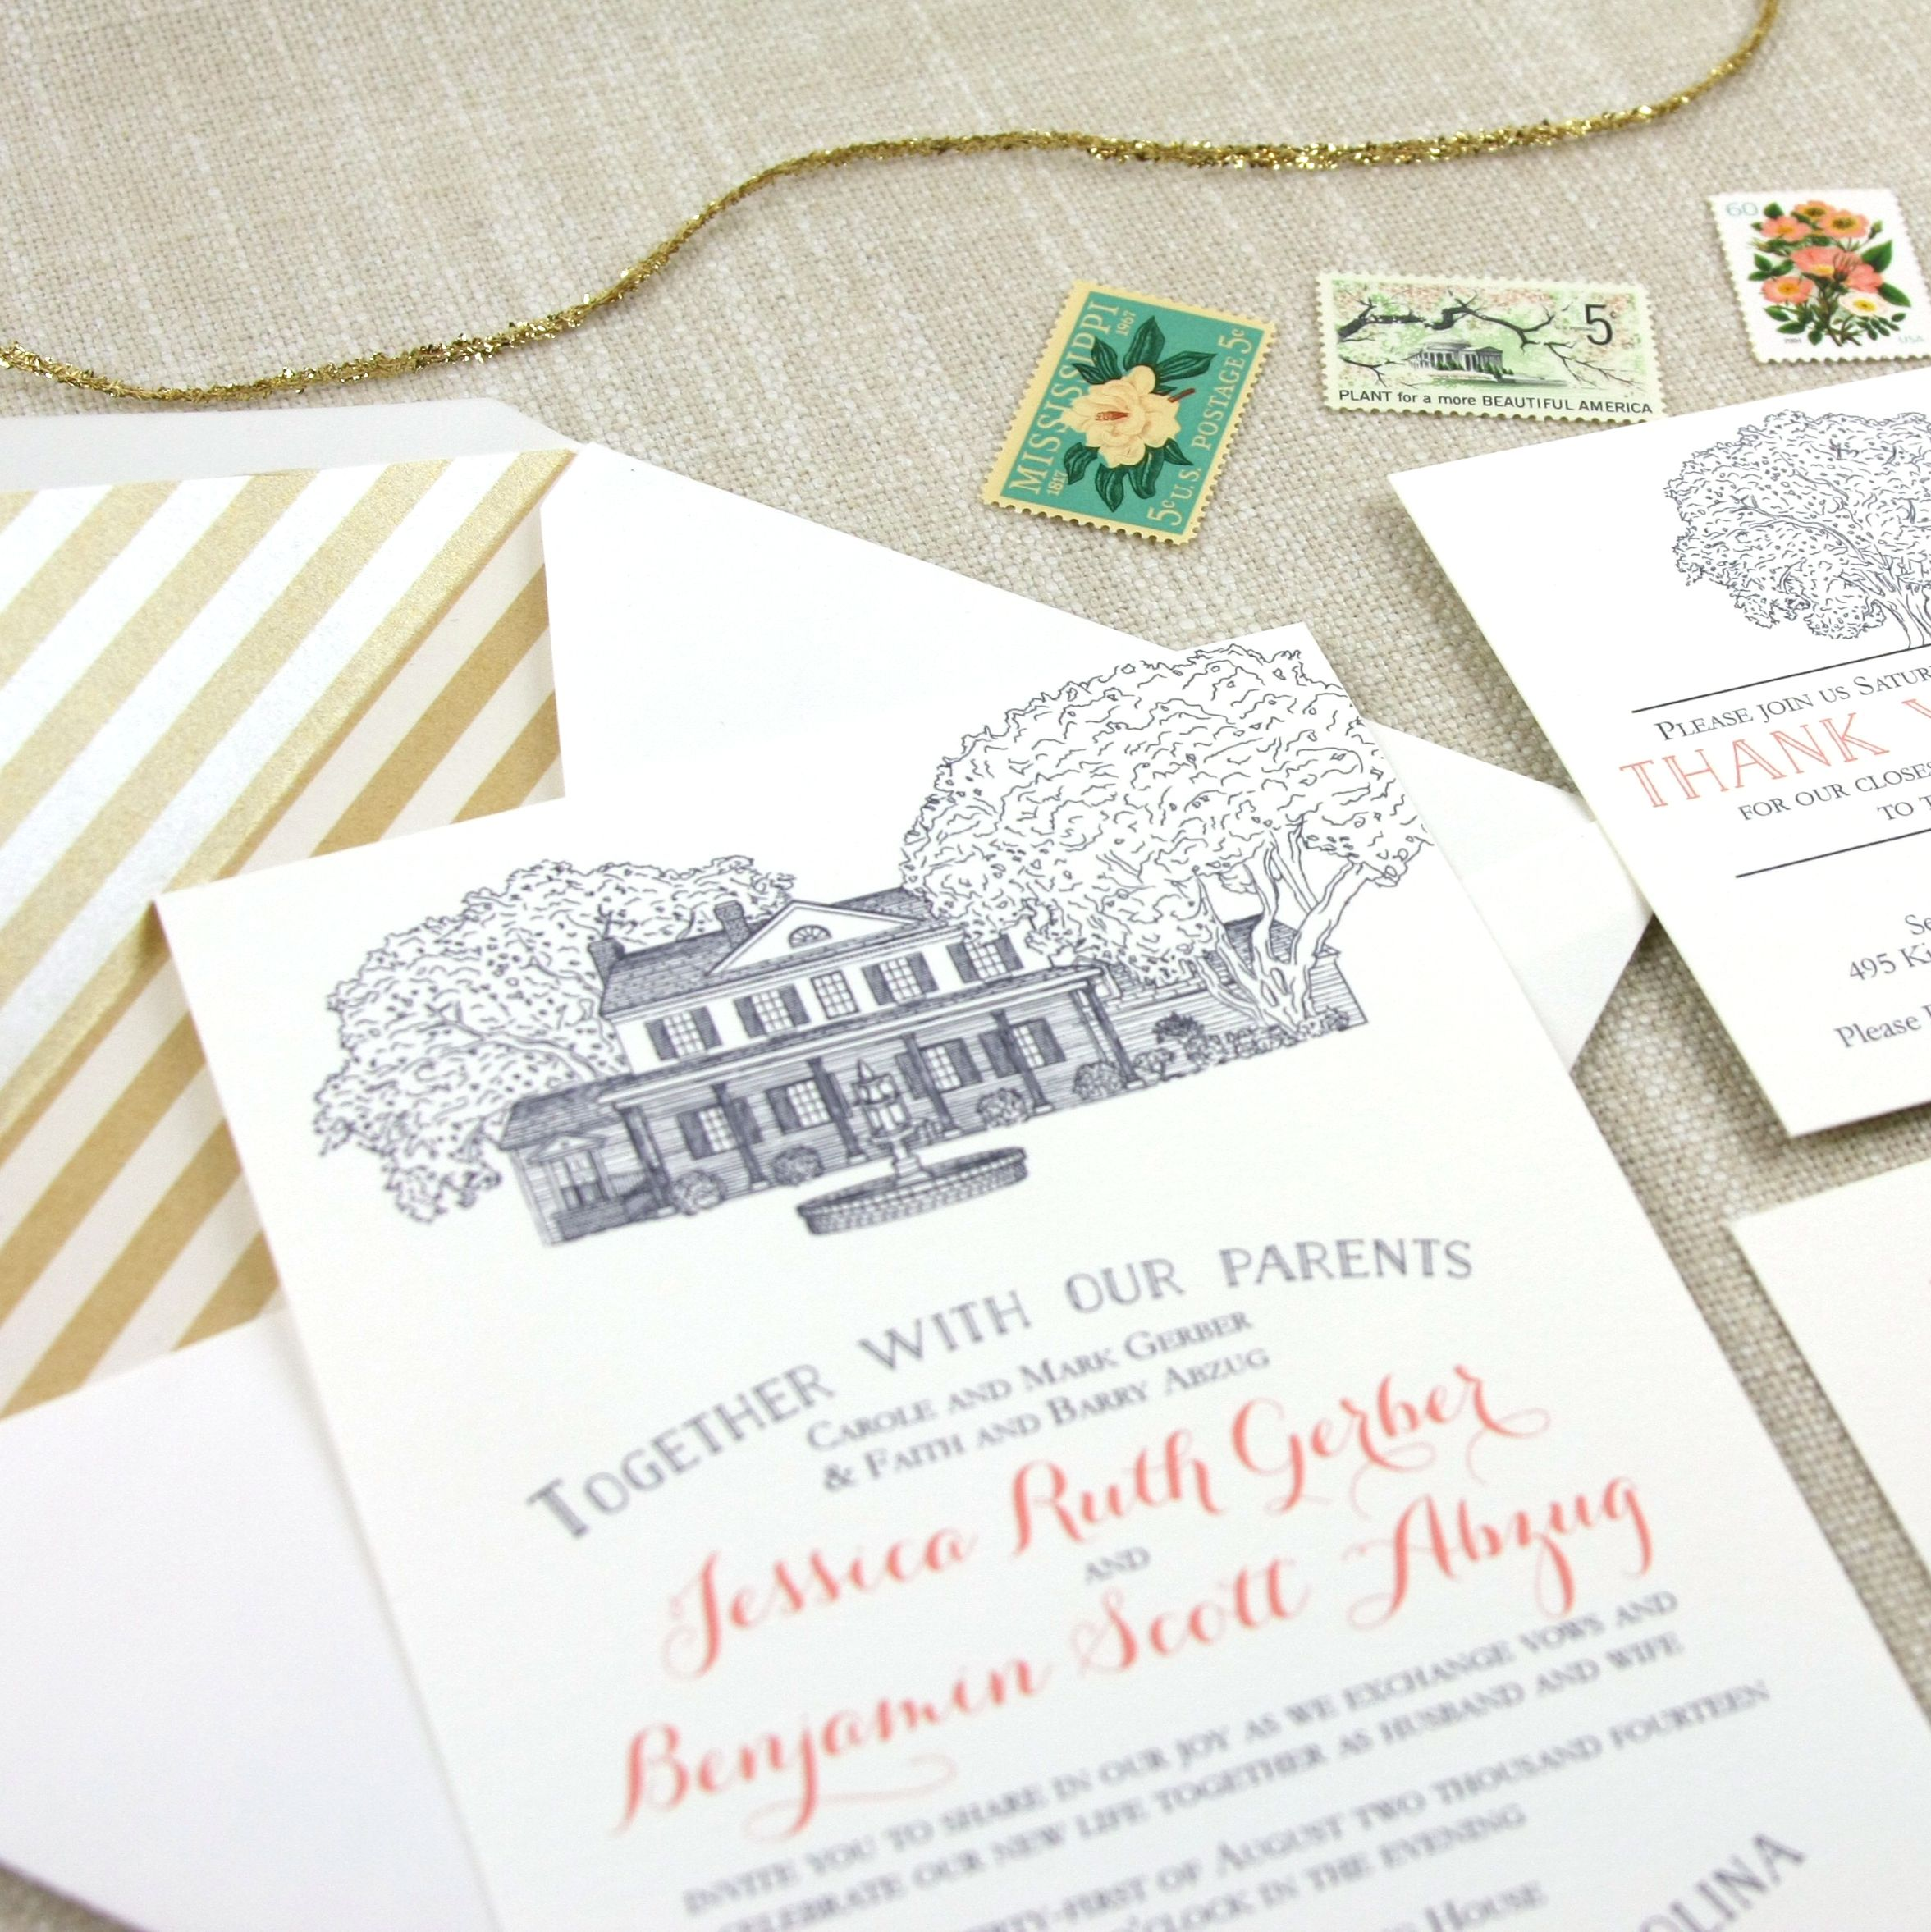 Cost Of Printing Wedding Invitations: Legare Waring House Wedding Invitation In 2019